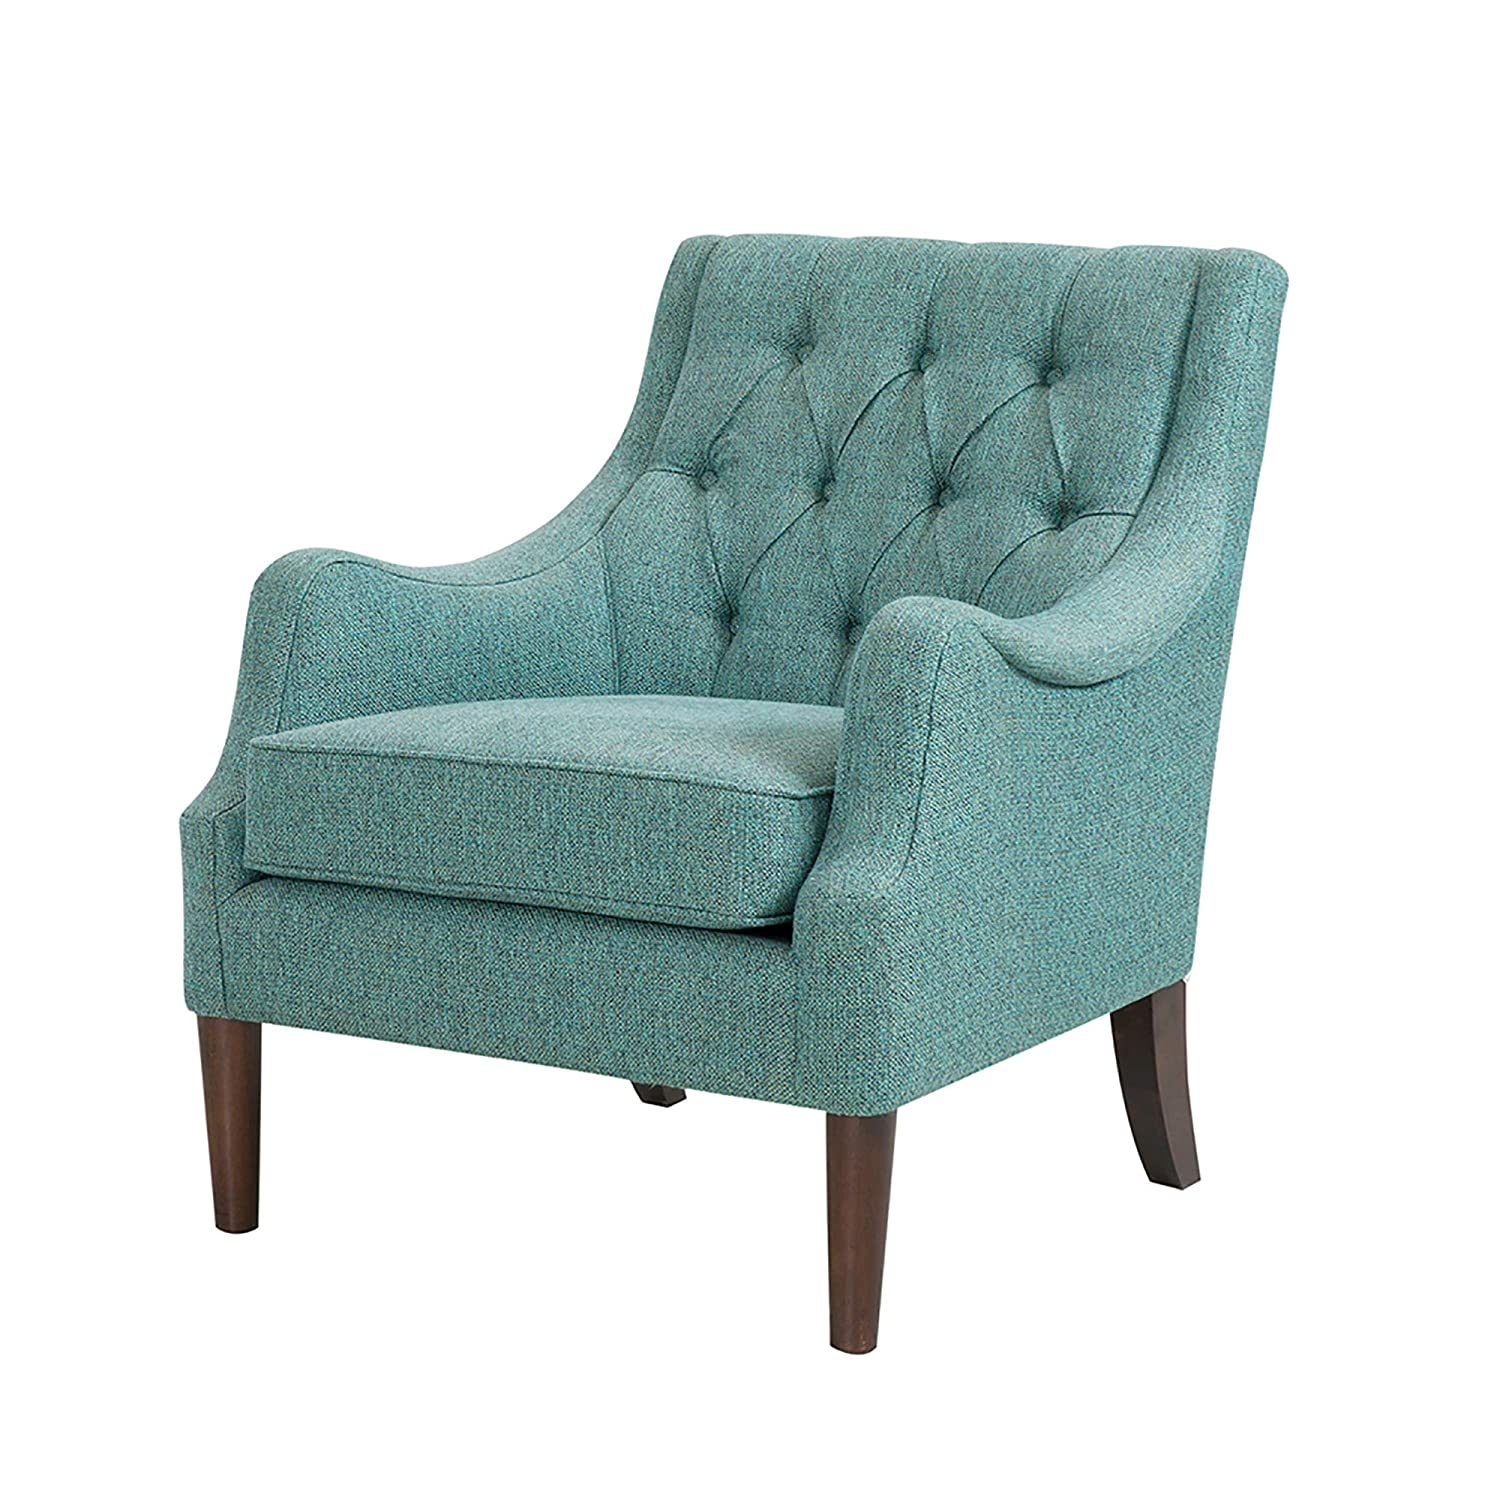 Madison Park FPF18-0512 Qwen Accent Chairs - Birch, Hardwood, Faux Linen Armchair, Modern Classic Style, Diamond Tufted Living Room Sofa Furniture, Bedside Lounger, Teal